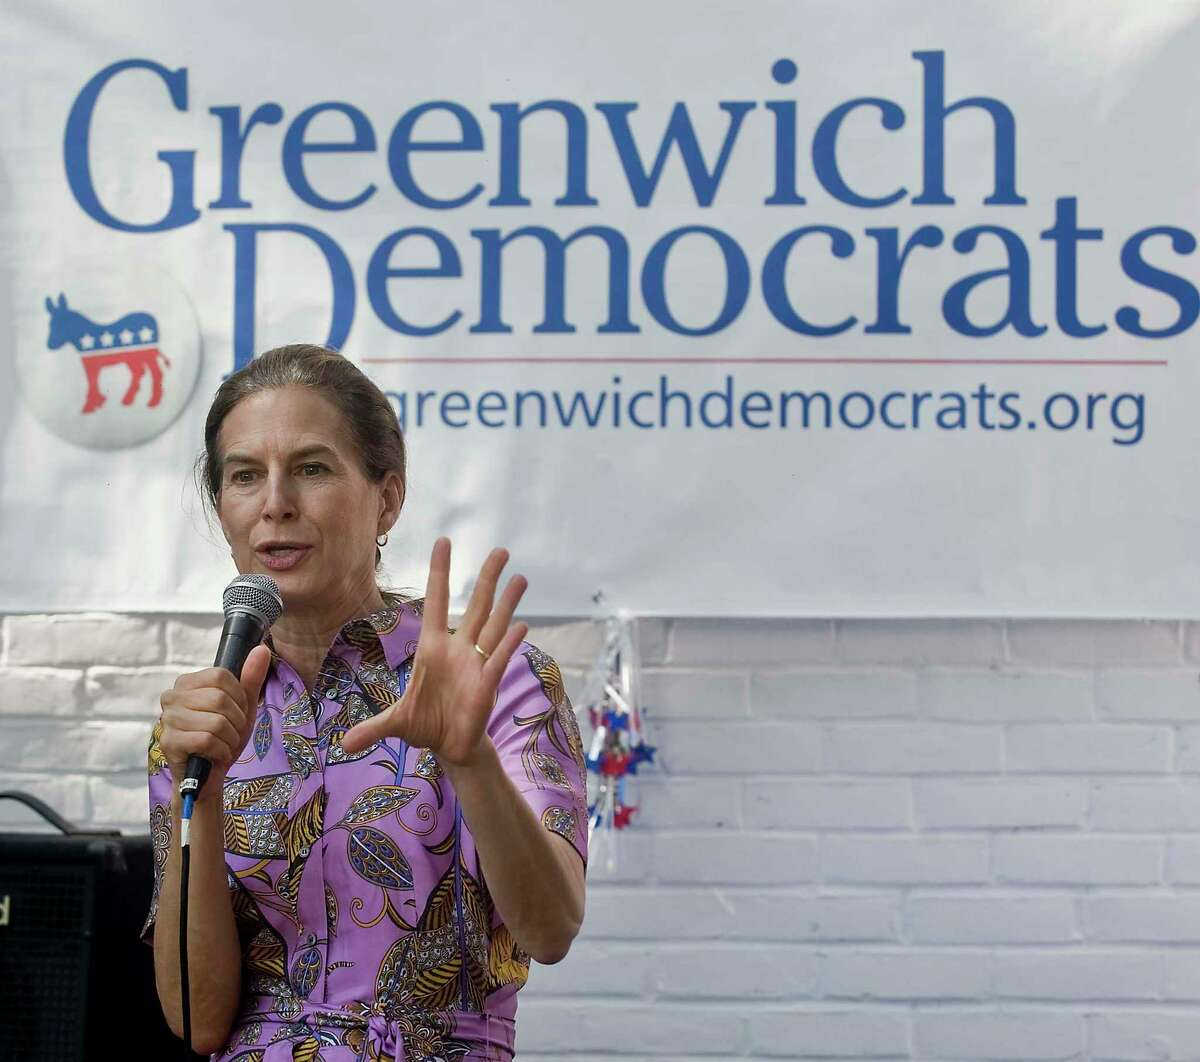 Connecticut Lt. Gov, Susan Bysiewicz speaks to the gathering at the Greenwich Democratic Town Committee's annual picnic at the Greenwich Botanical Center, on Sunday, Sept. 15, 2019